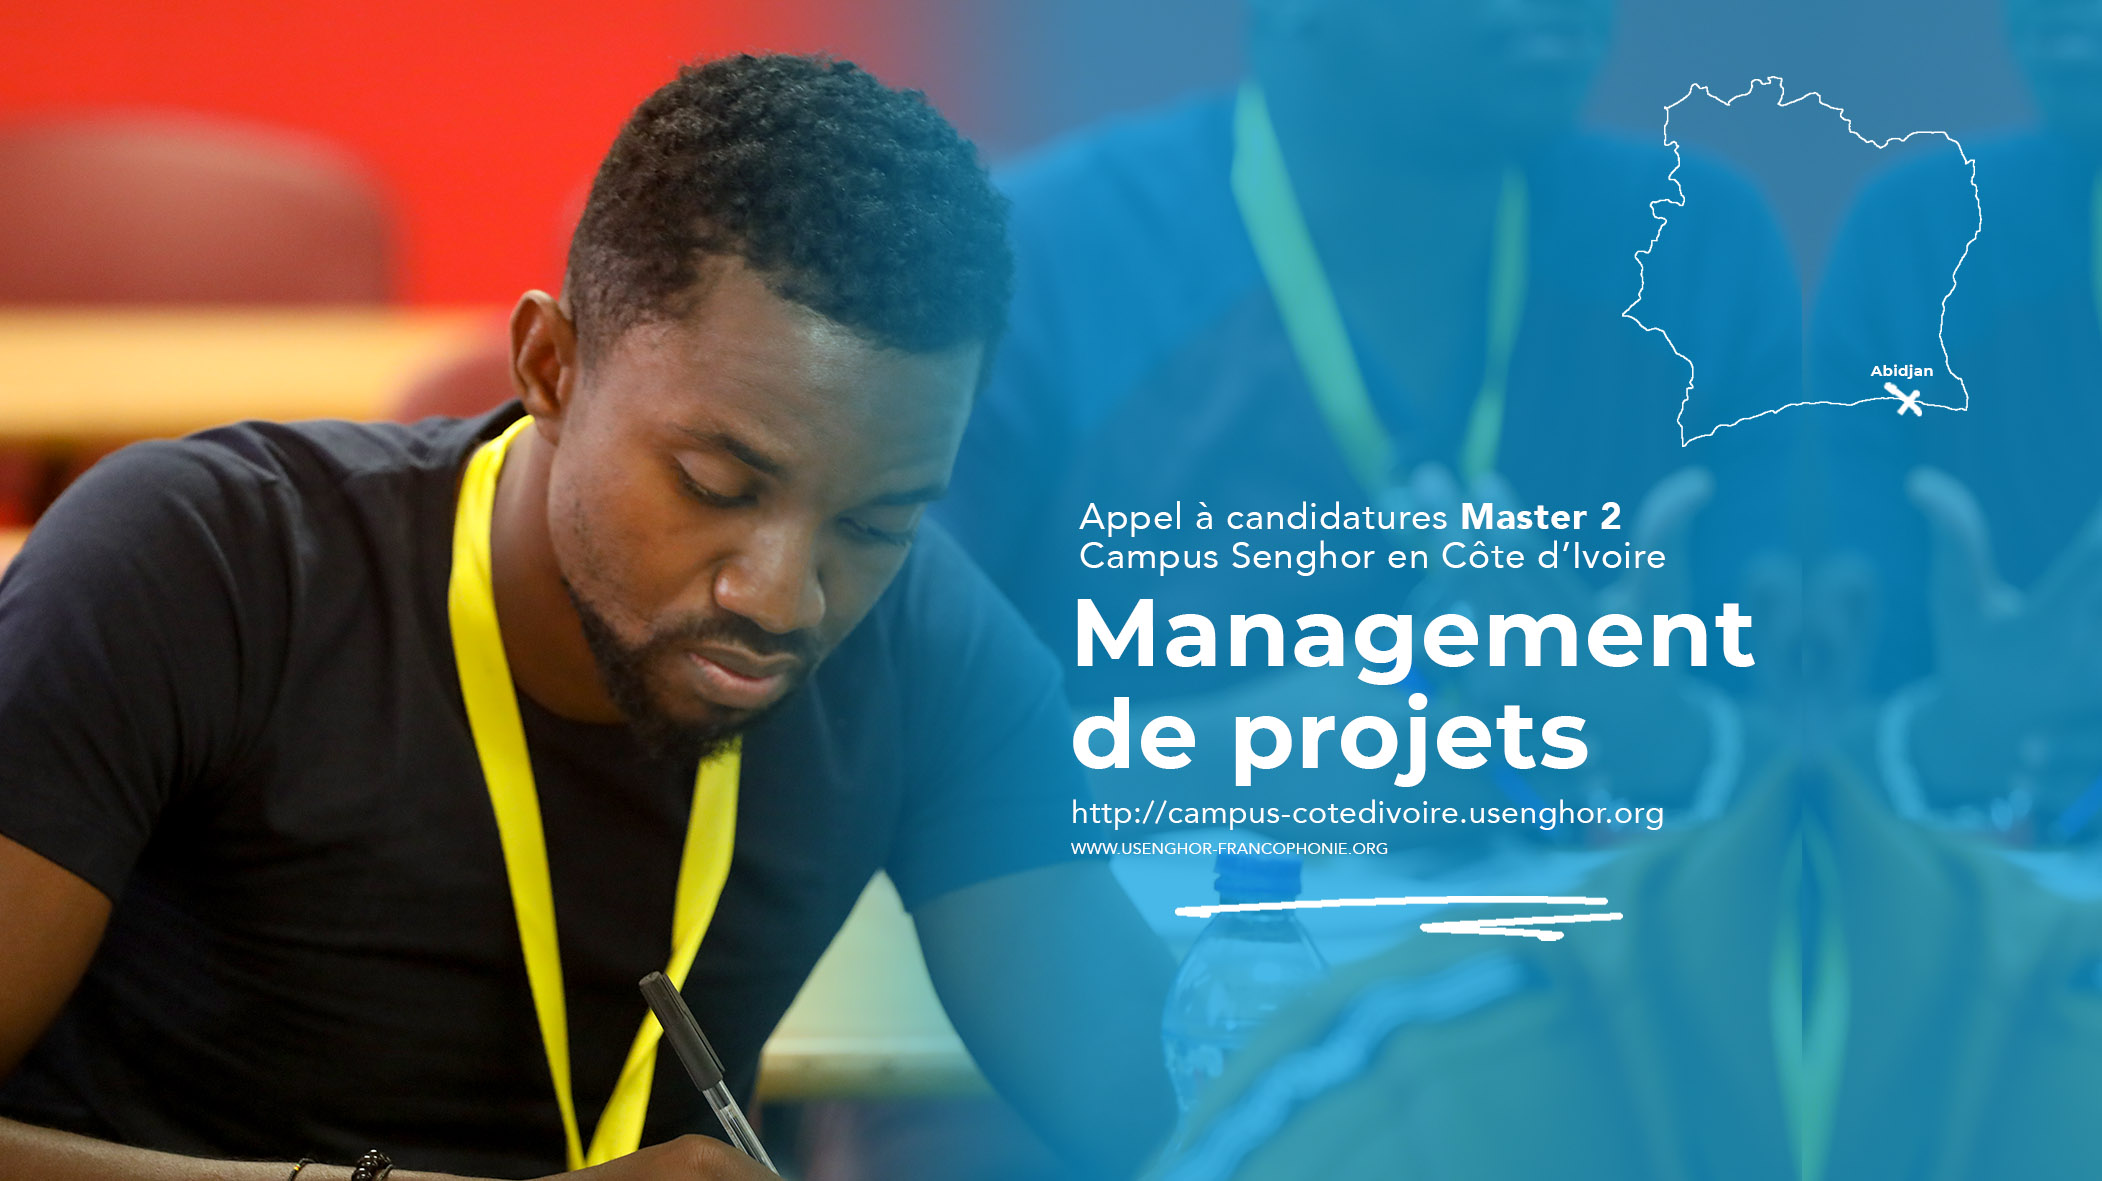 Appel à candidatures : Management de projets